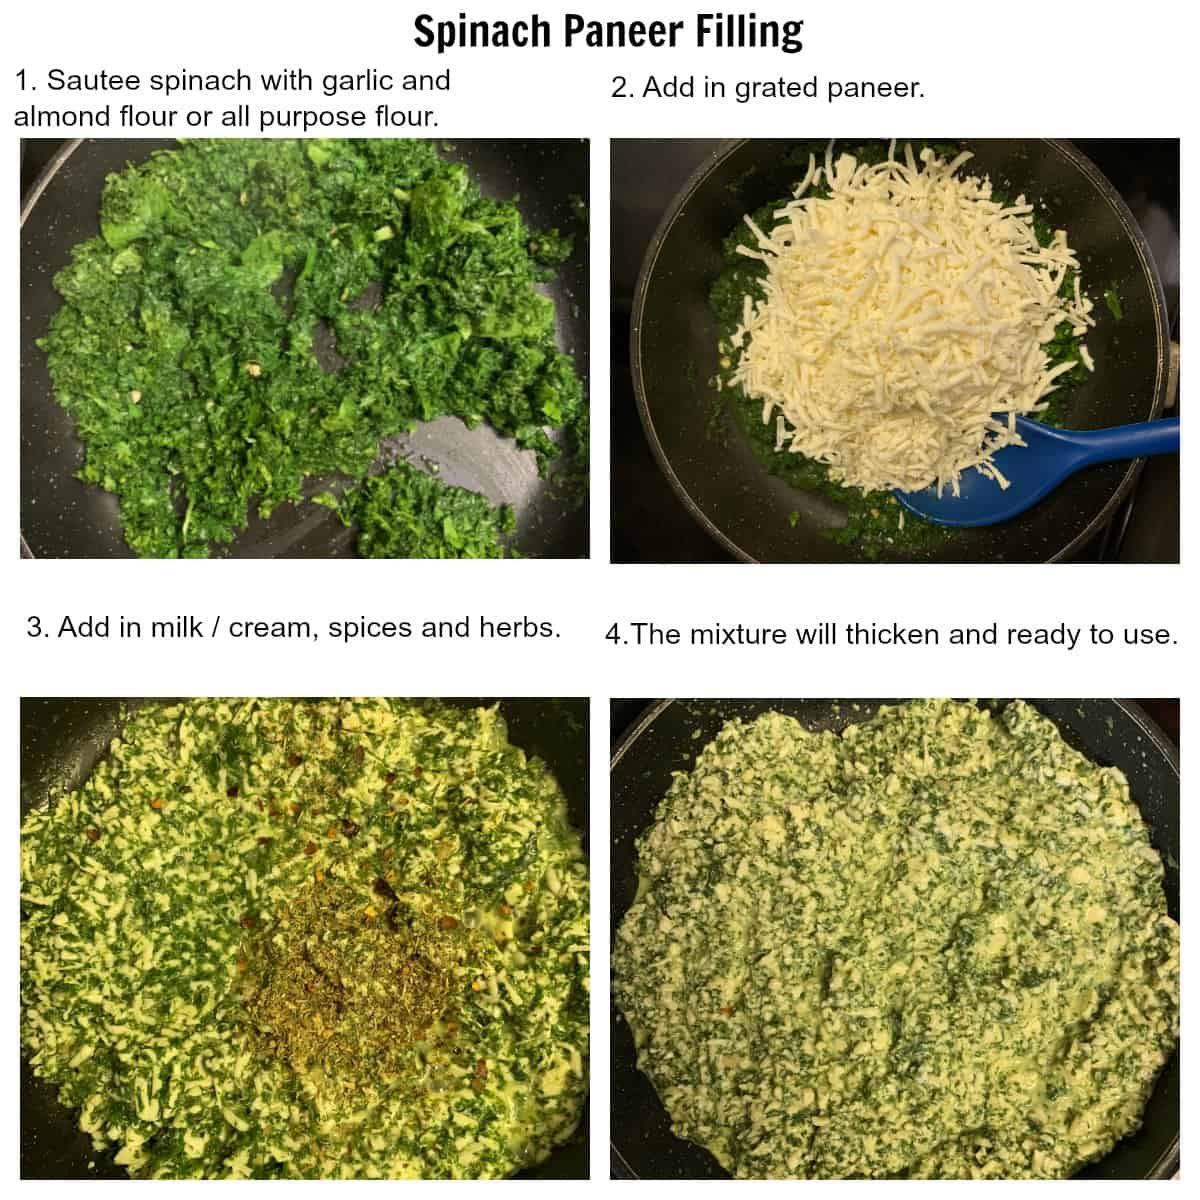 Steps in making spinach paneer filling